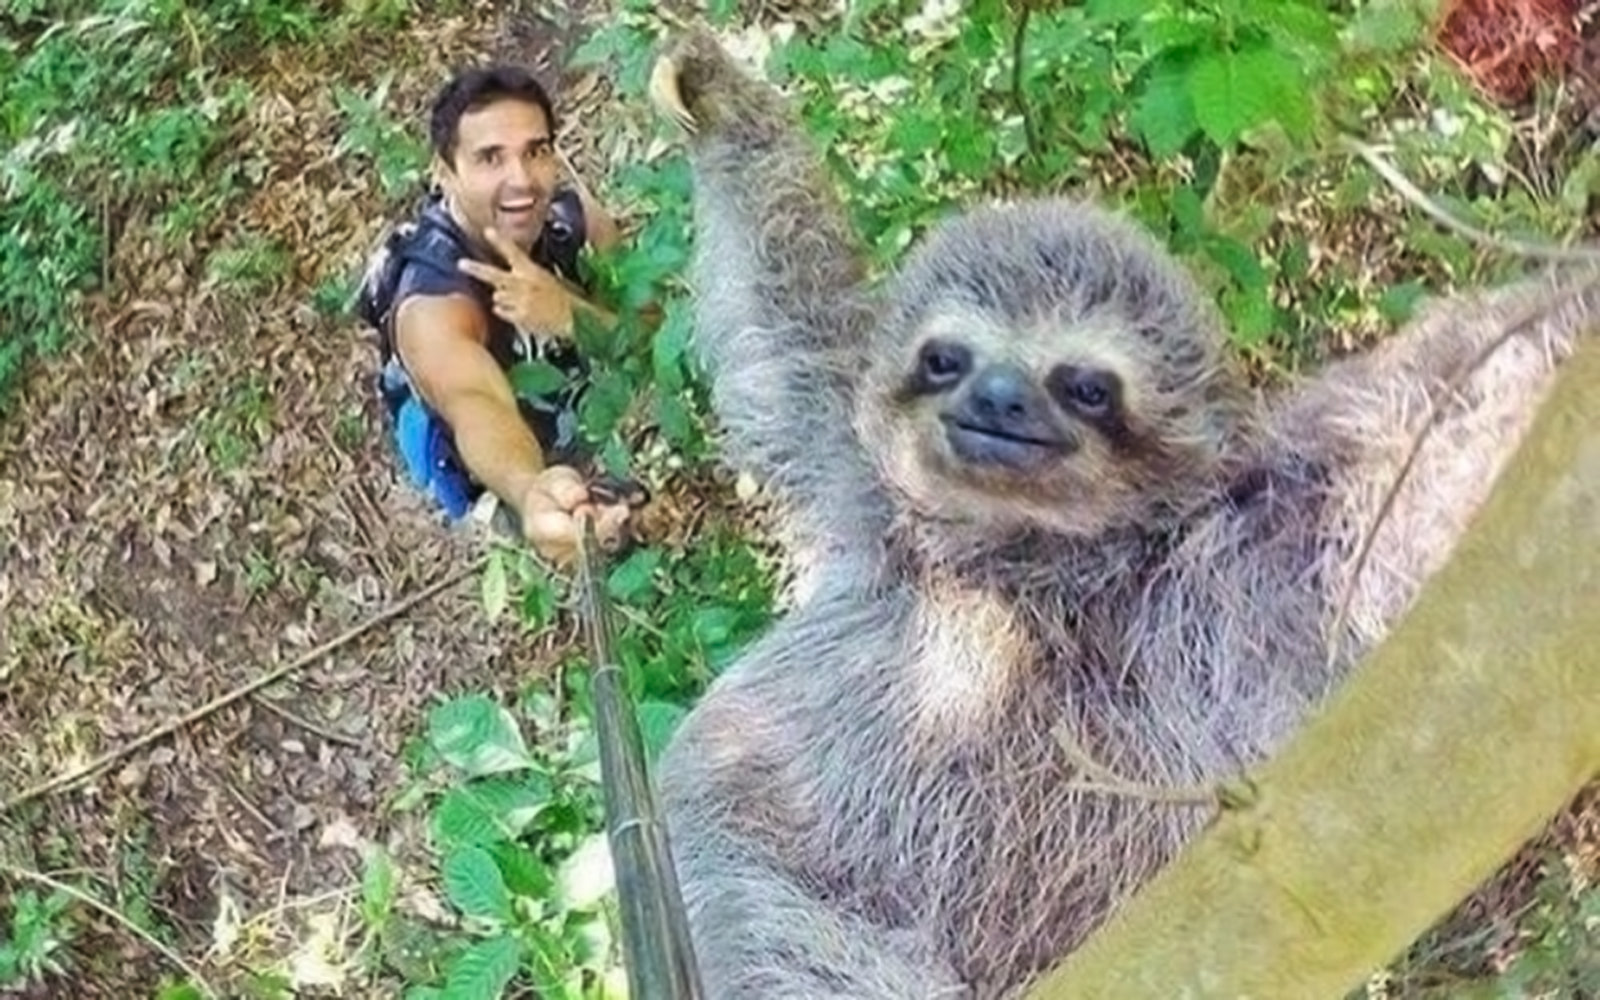 Man Takes Sloth Selfie